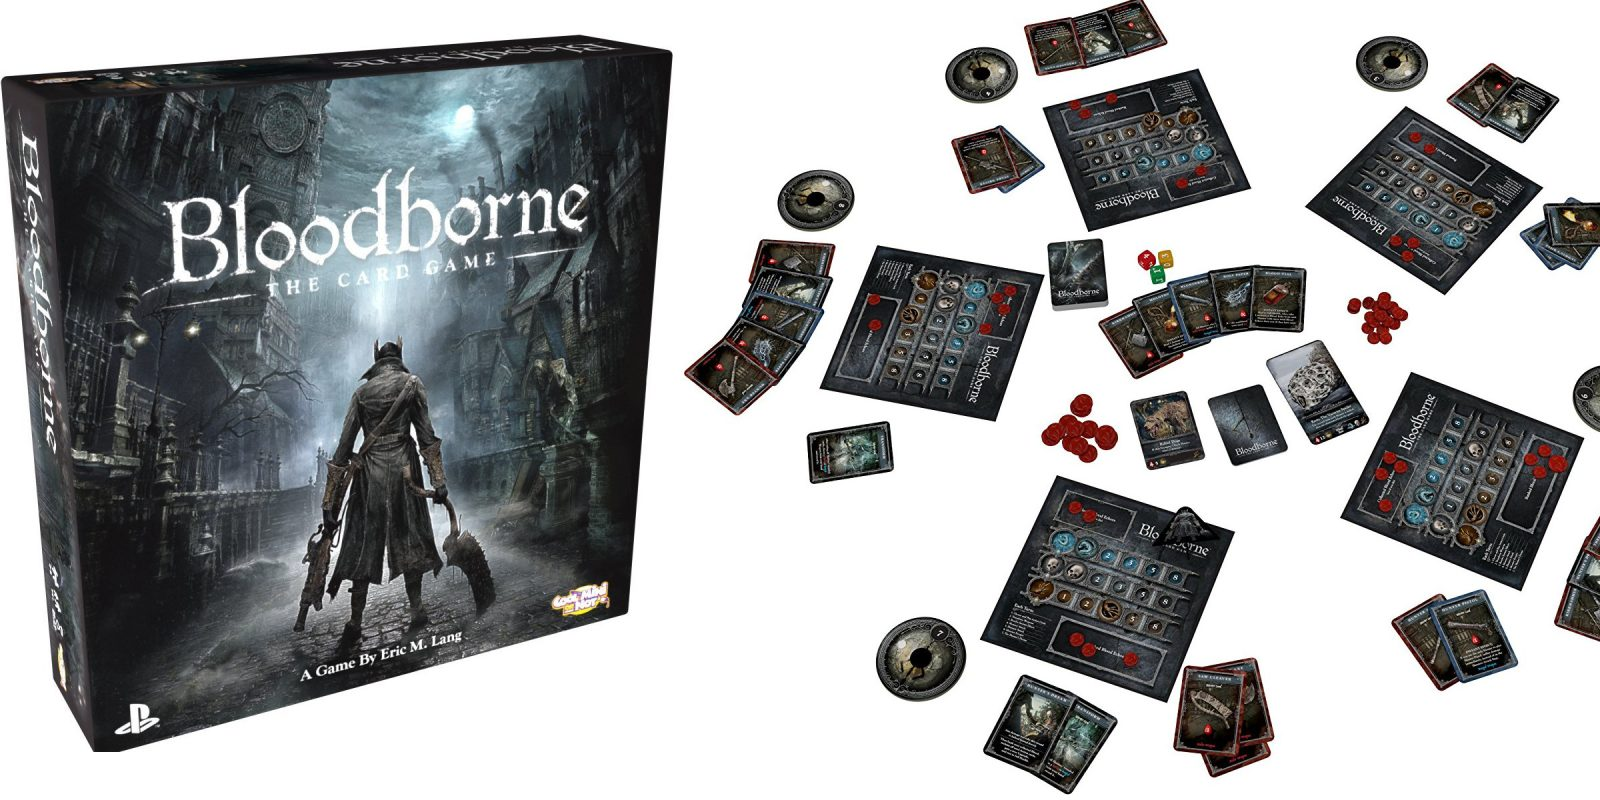 Board games from $5: Bloodborne, Monopoly Sonic, Pandemic, Jenga, more